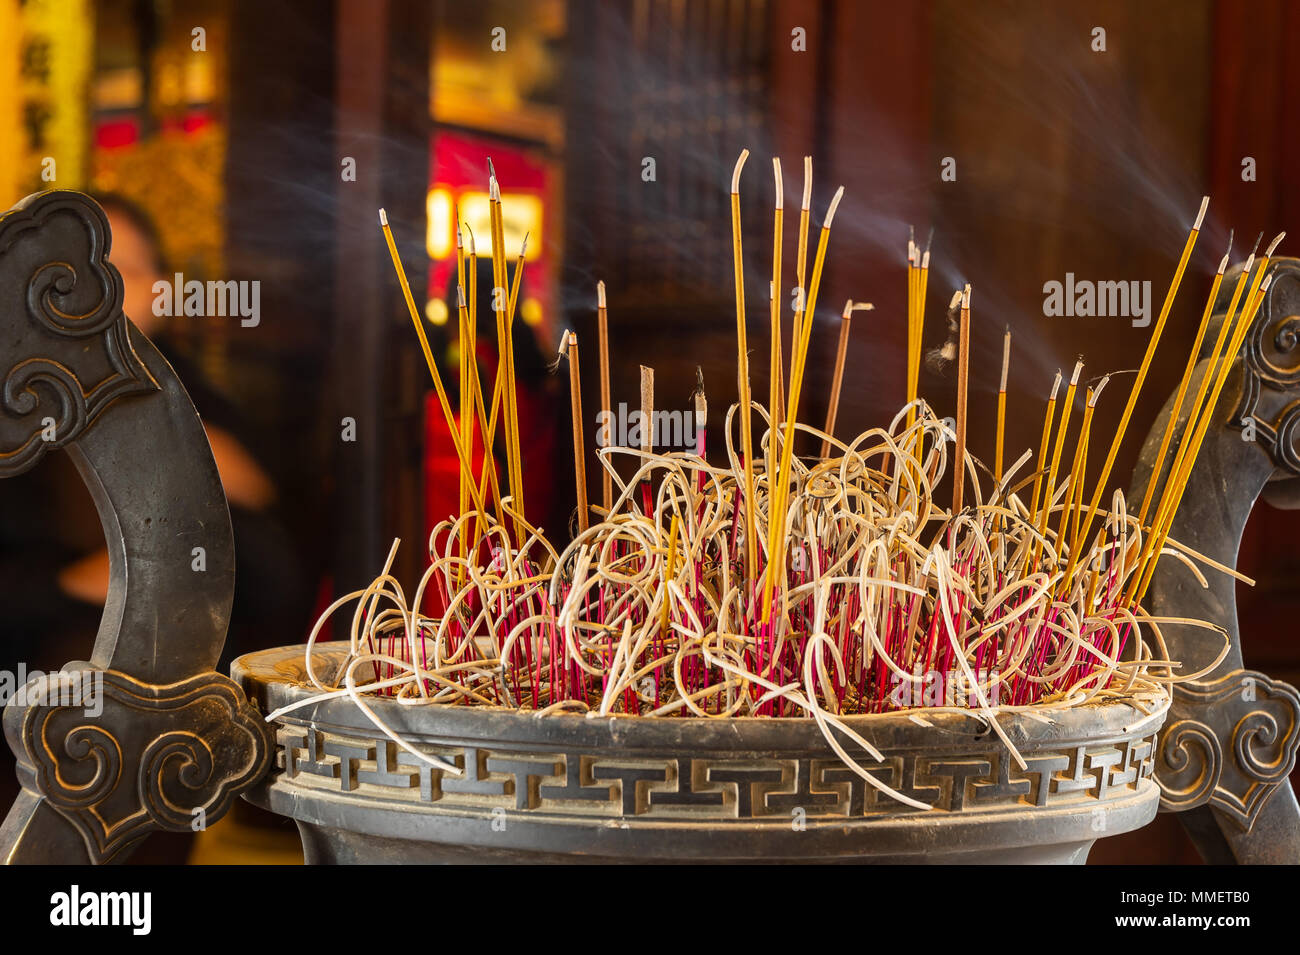 An urn with brightly colored burning incense at the entrance to a temple in Viet Nam - Stock Image